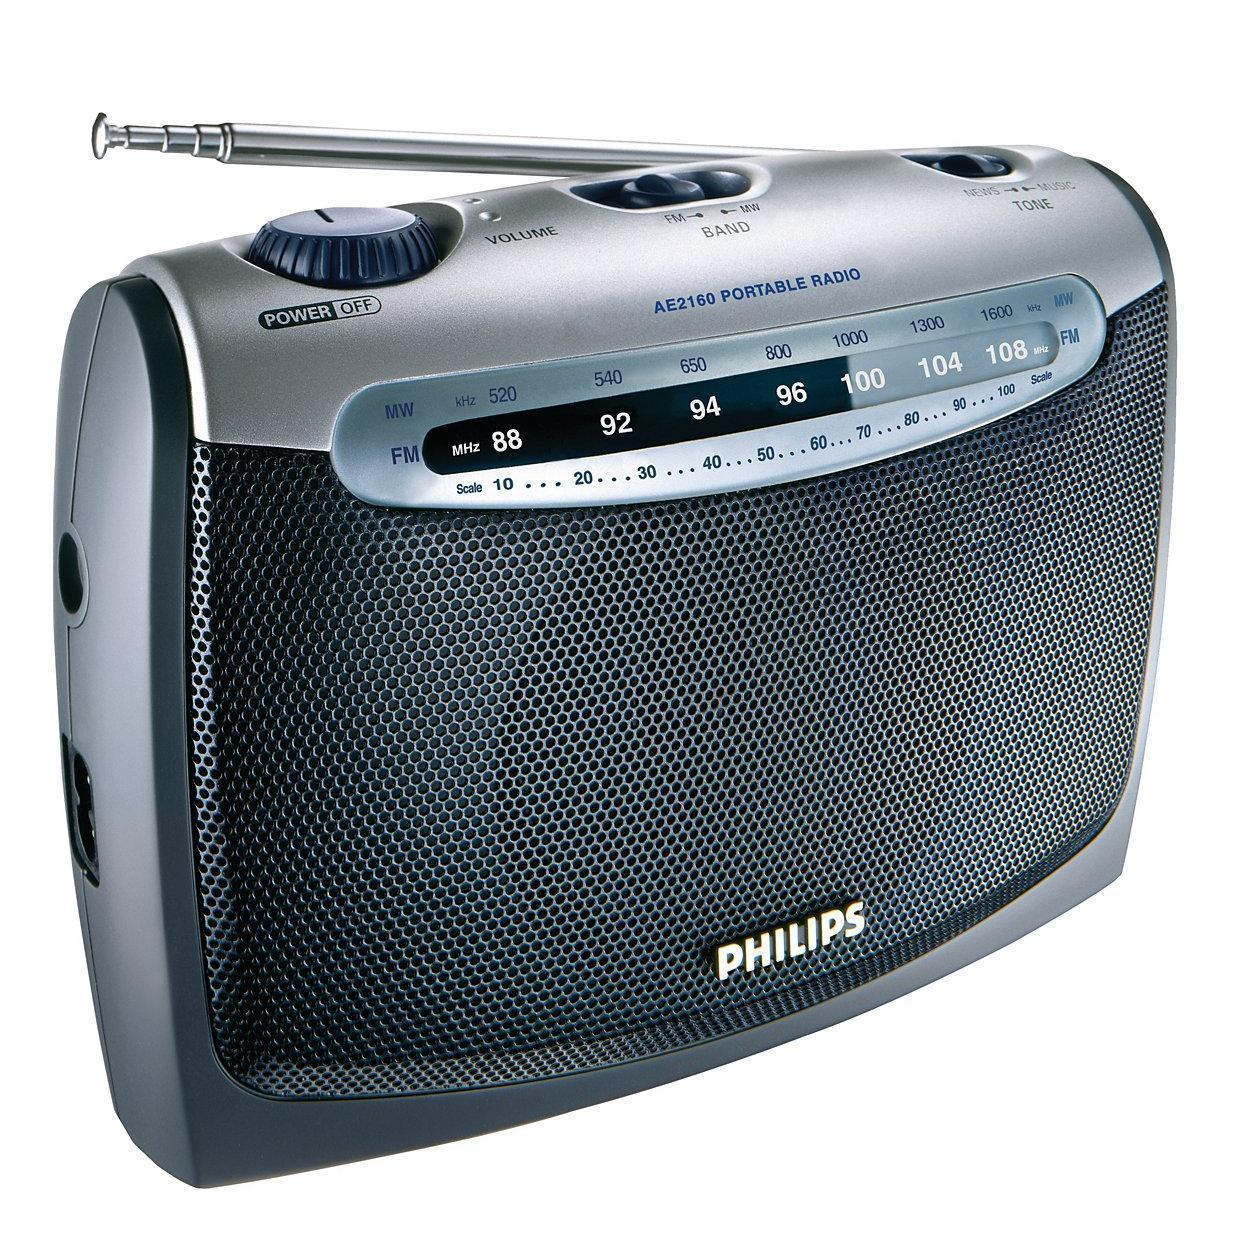 Philips Radio portable AE2160 FM/MW